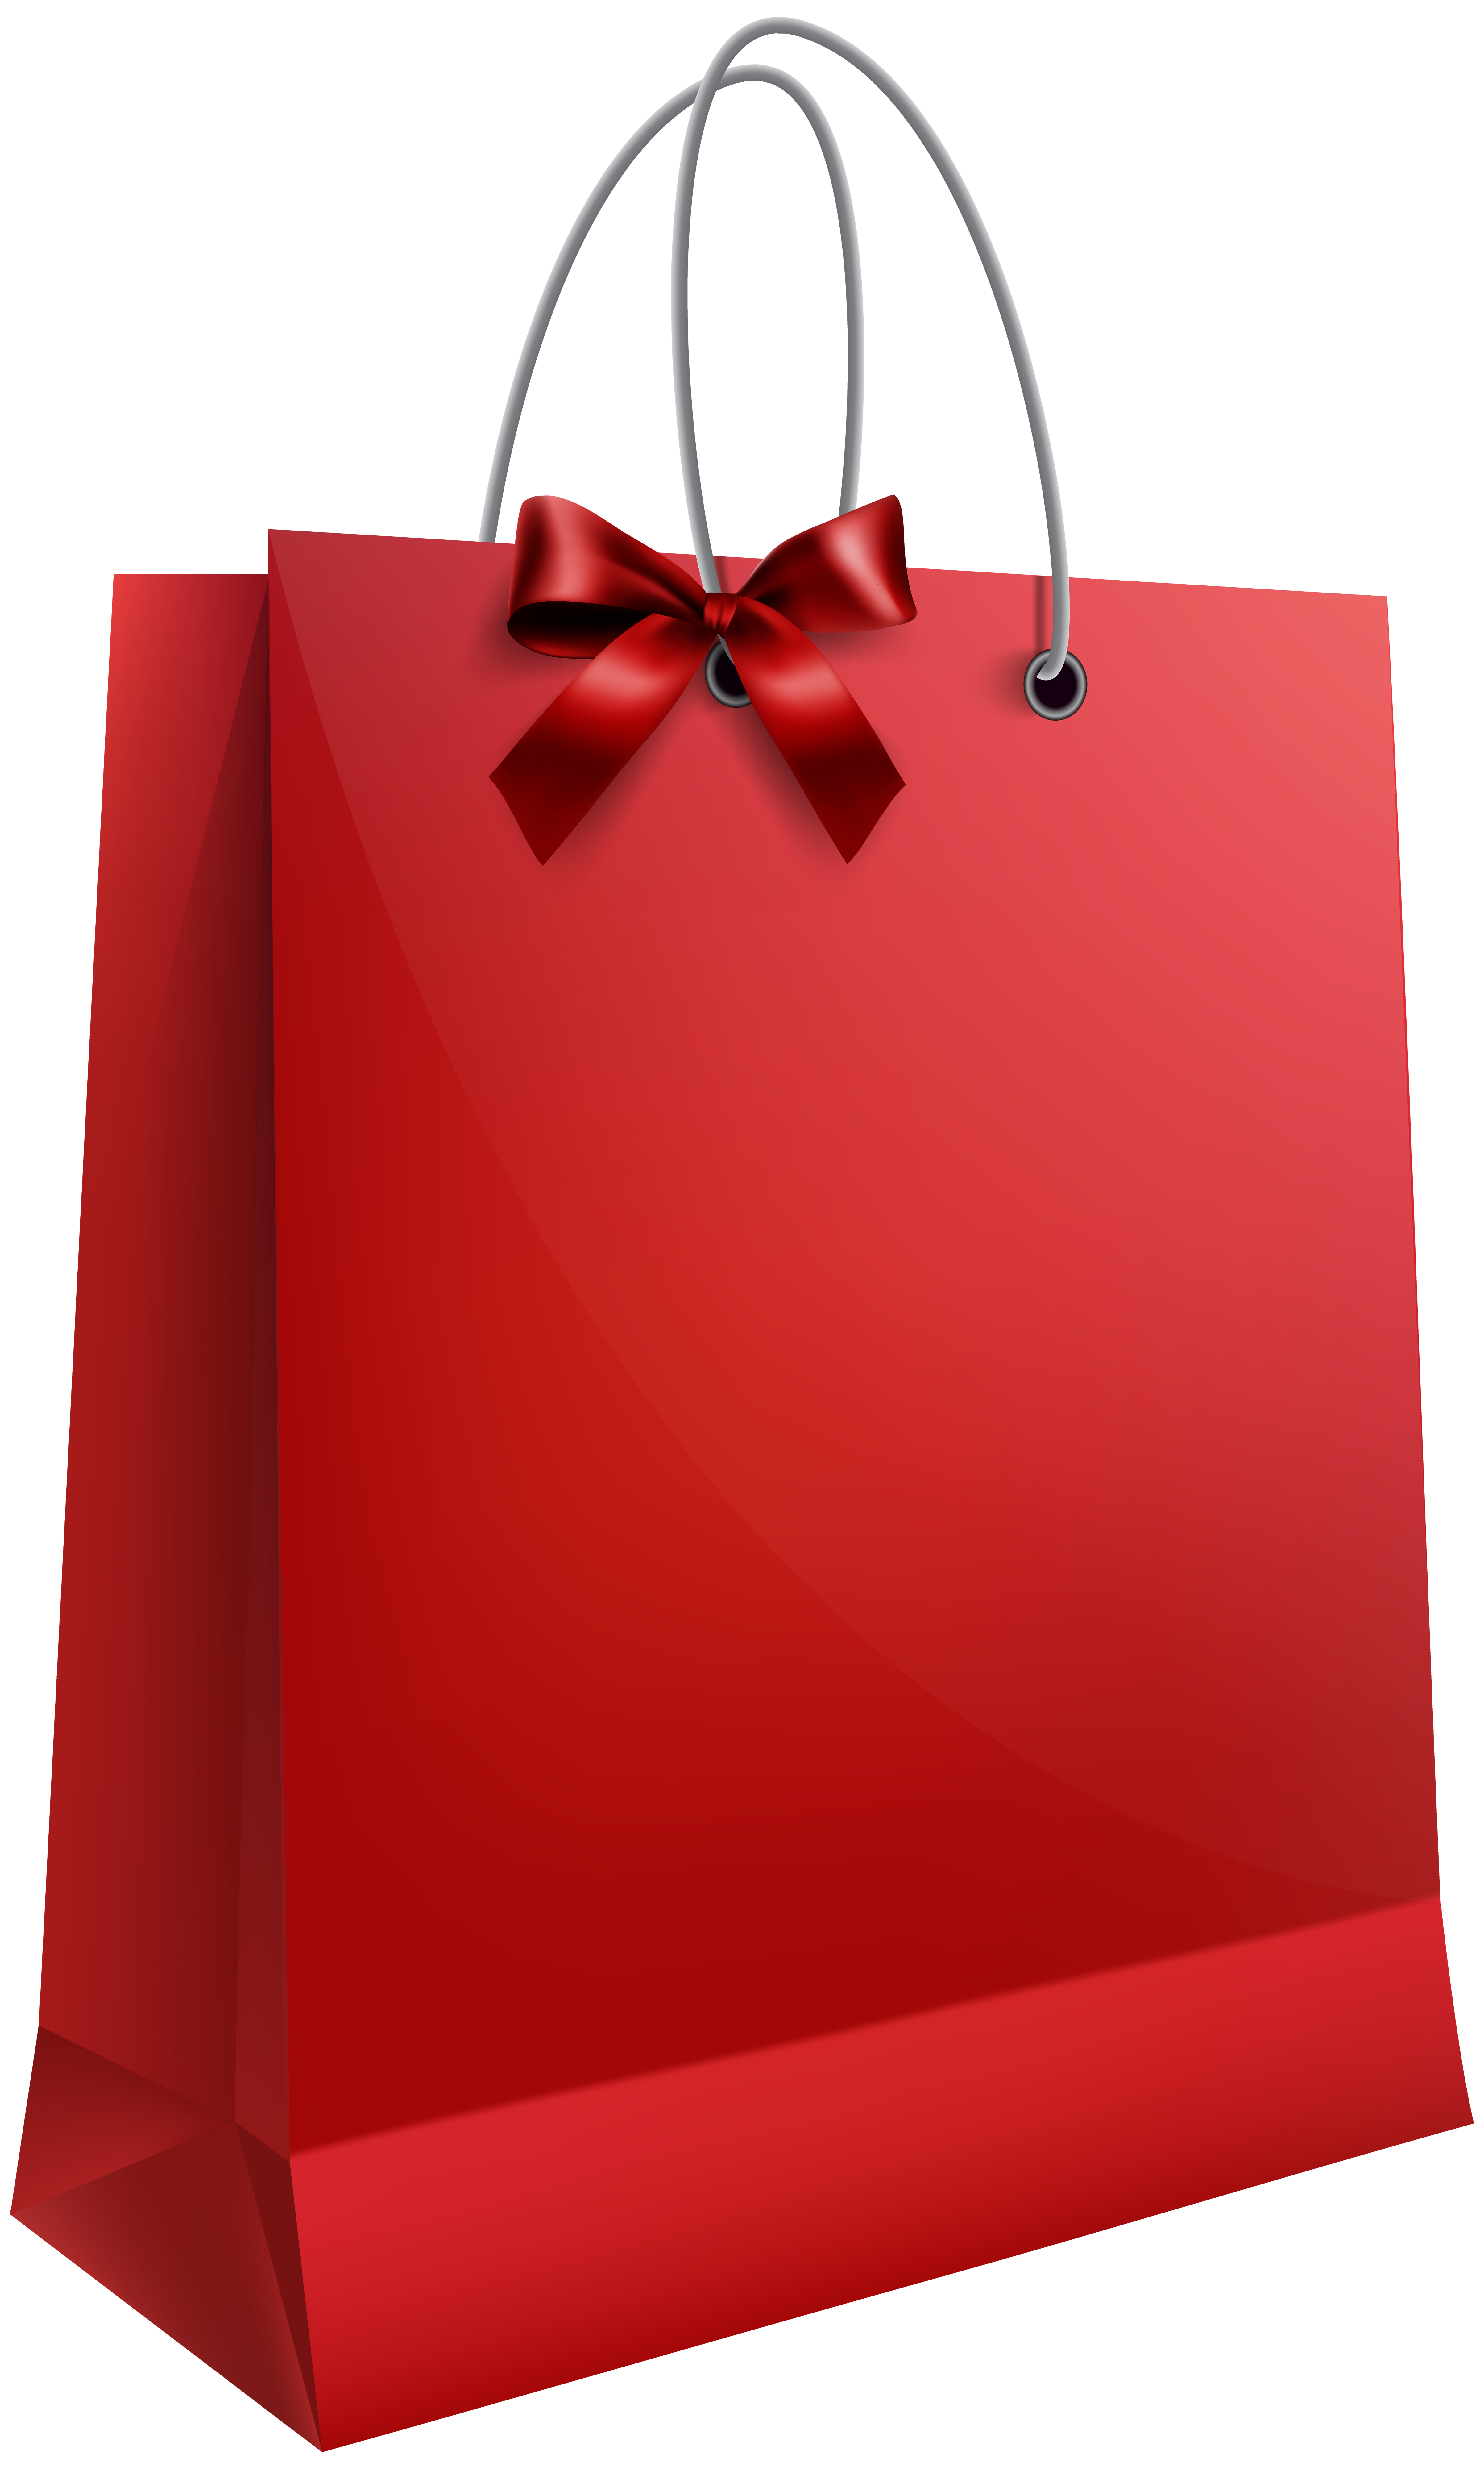 Bag clipart gift. Red with bow png